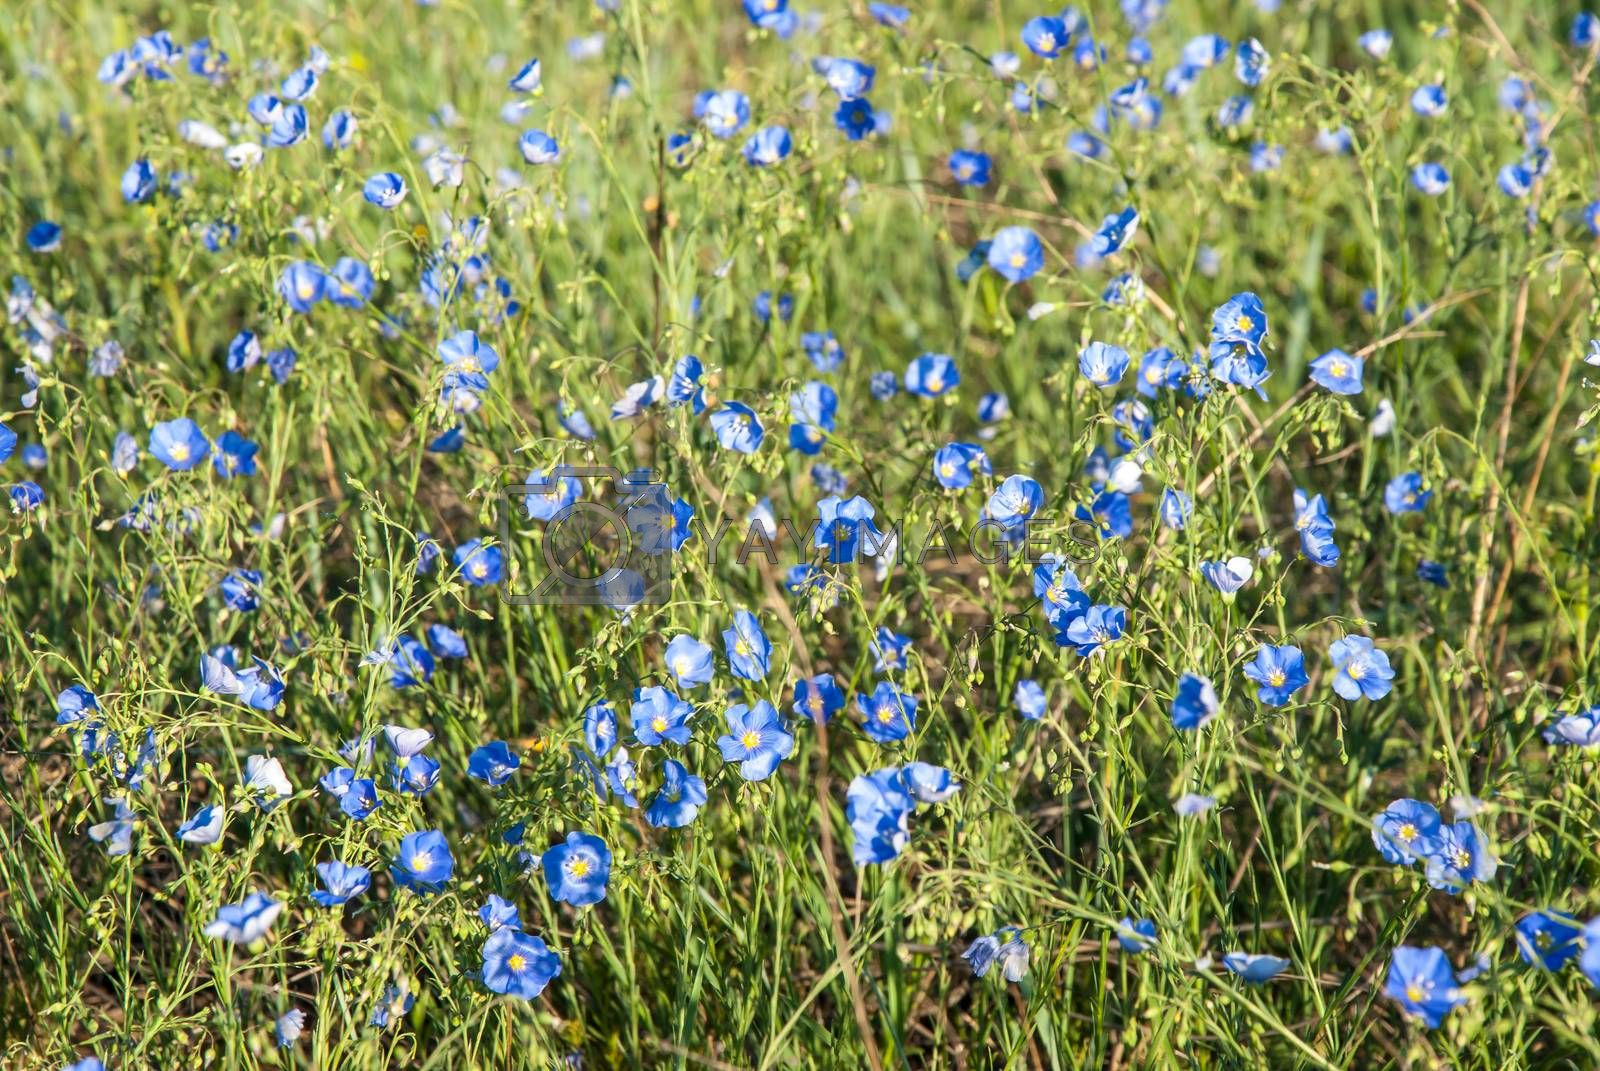 Meadow with blue flax flowers, spring sunny day